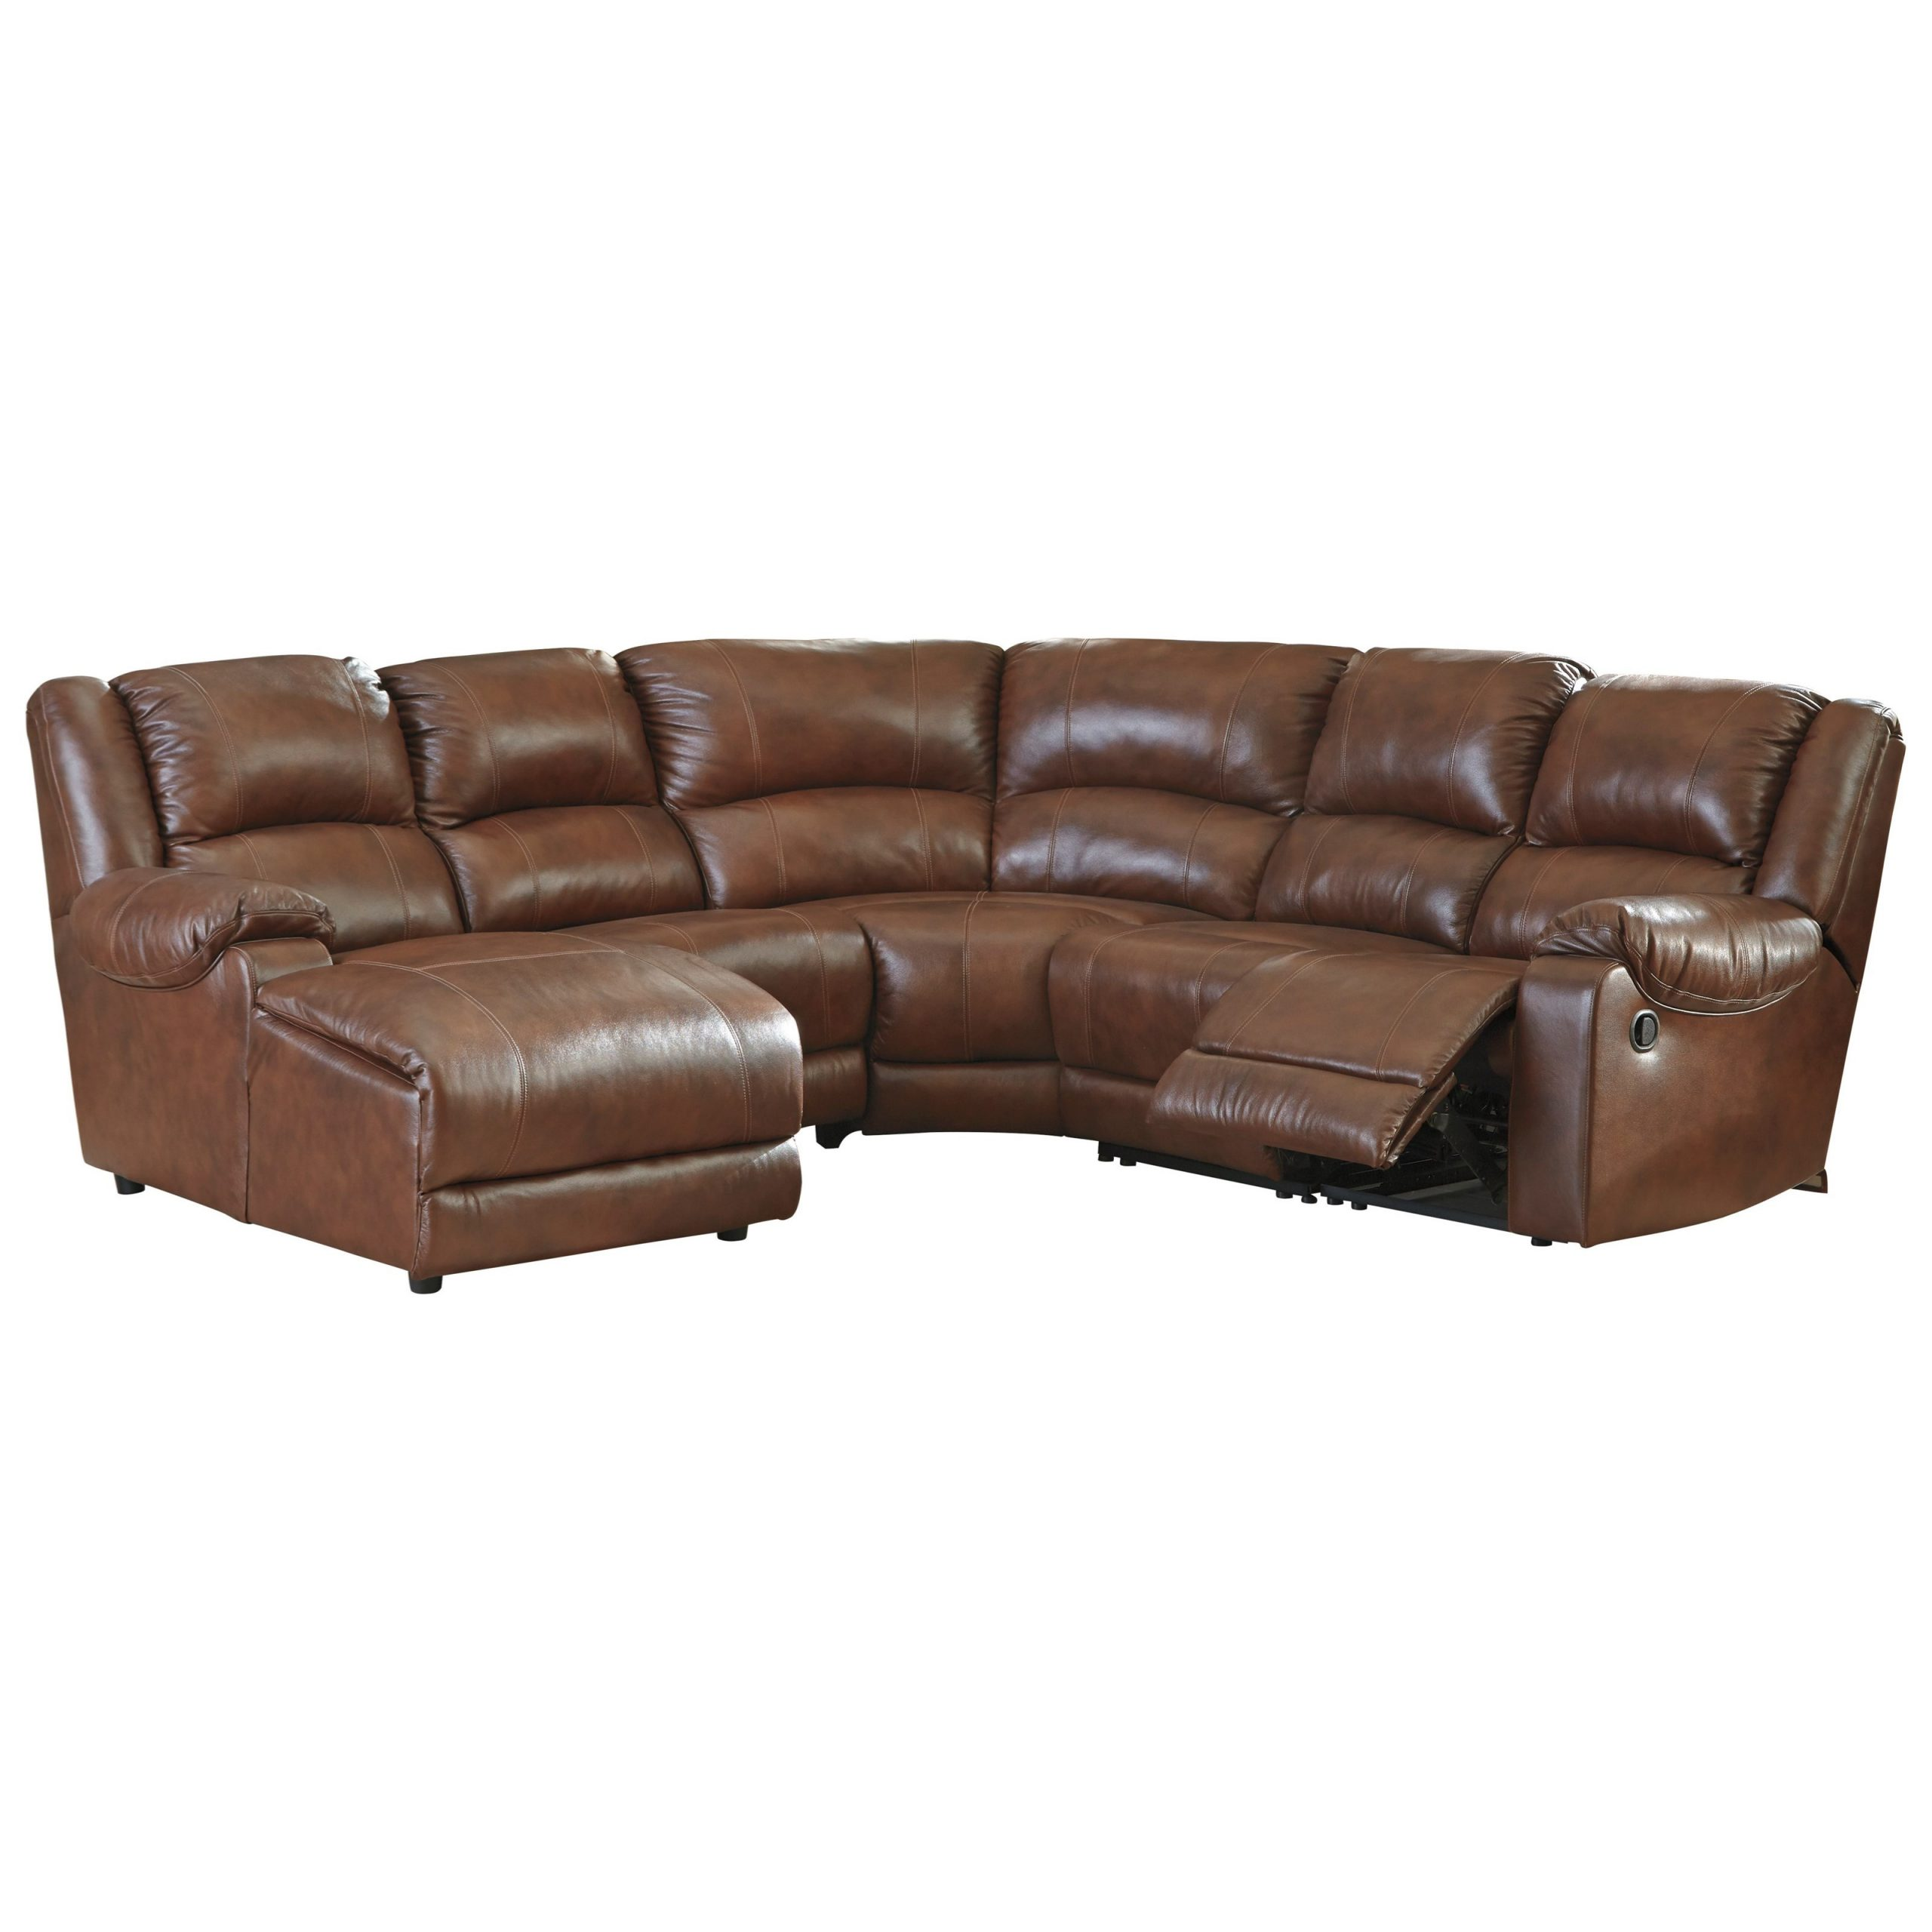 2018 Signature Designashley Billwedge Leather Match For Copenhagen Reclining Sectional Sofas With Right Storage Chaise (View 19 of 20)